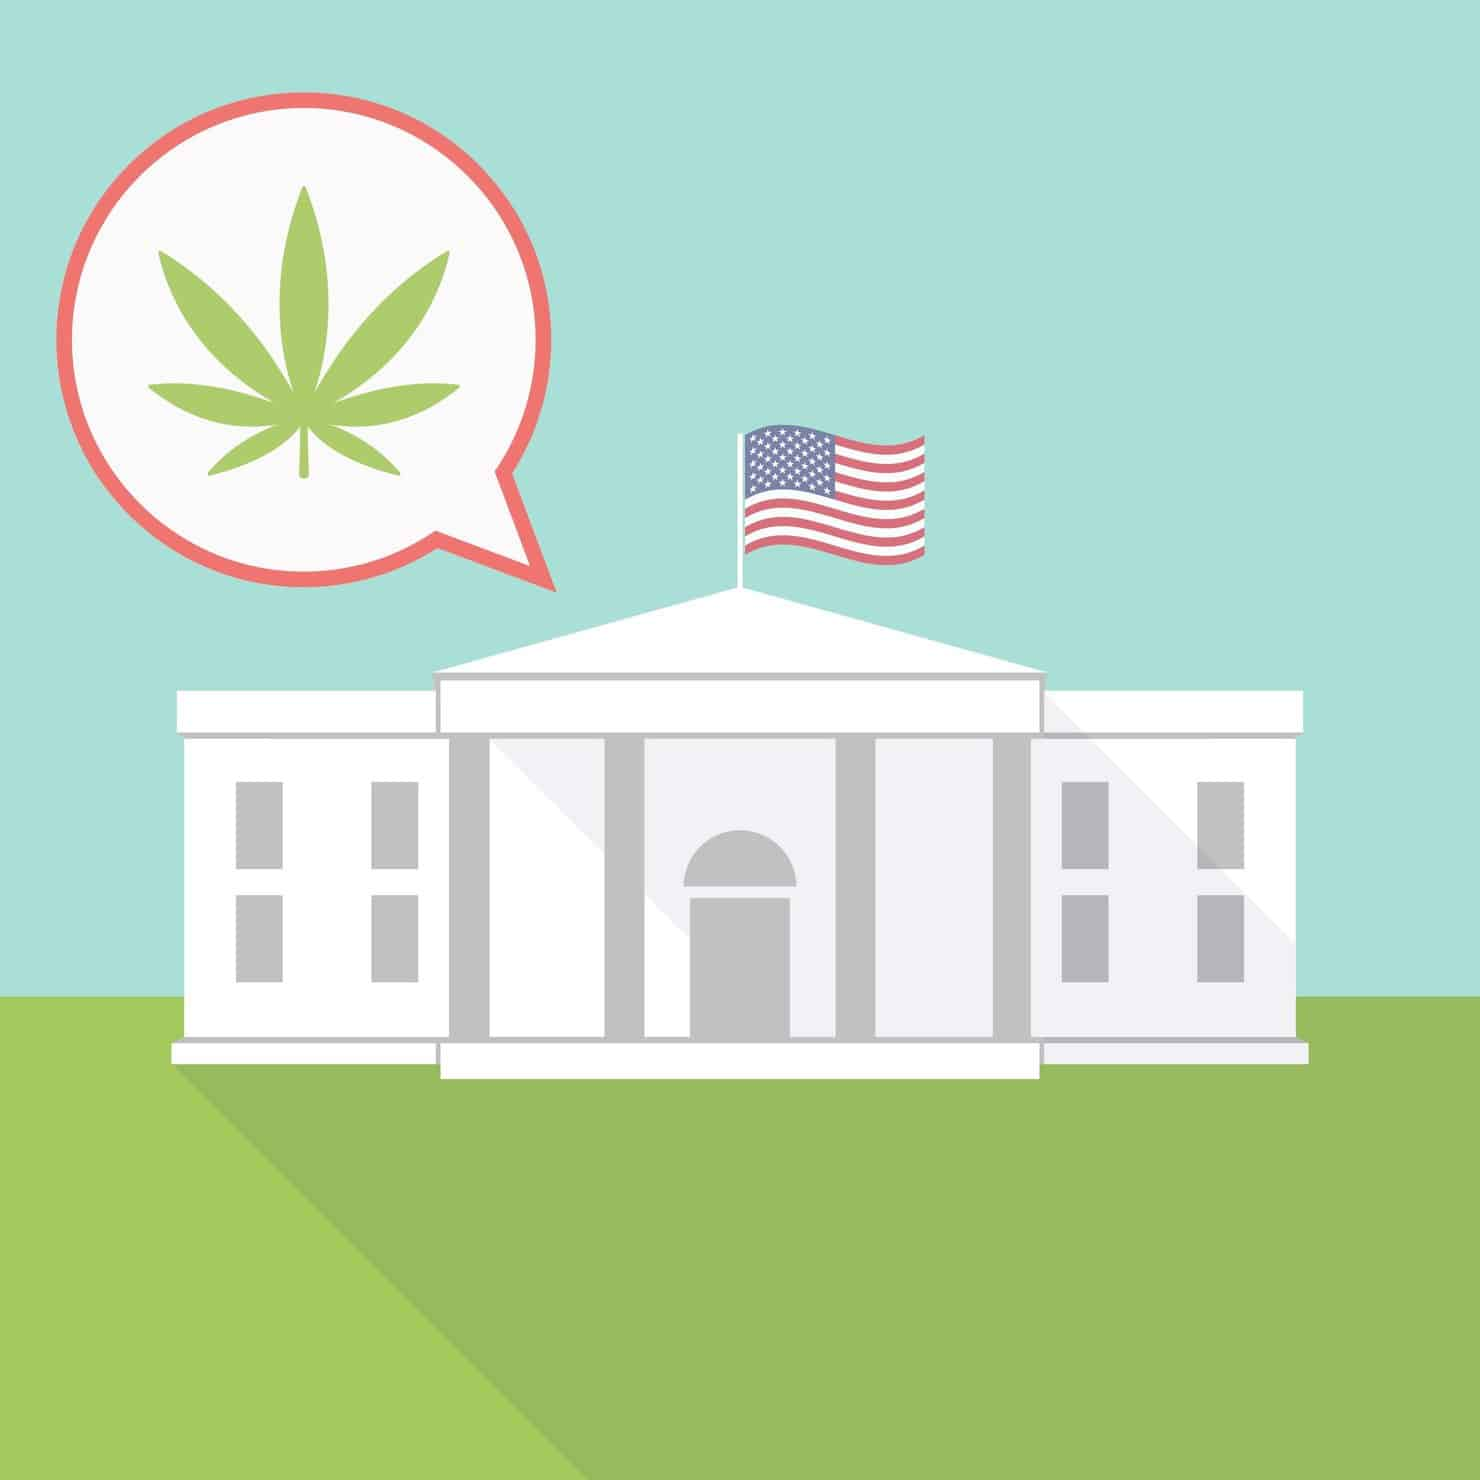 Is This Secret Trump Committee Planning To Undermine Legal Cannabis? White house